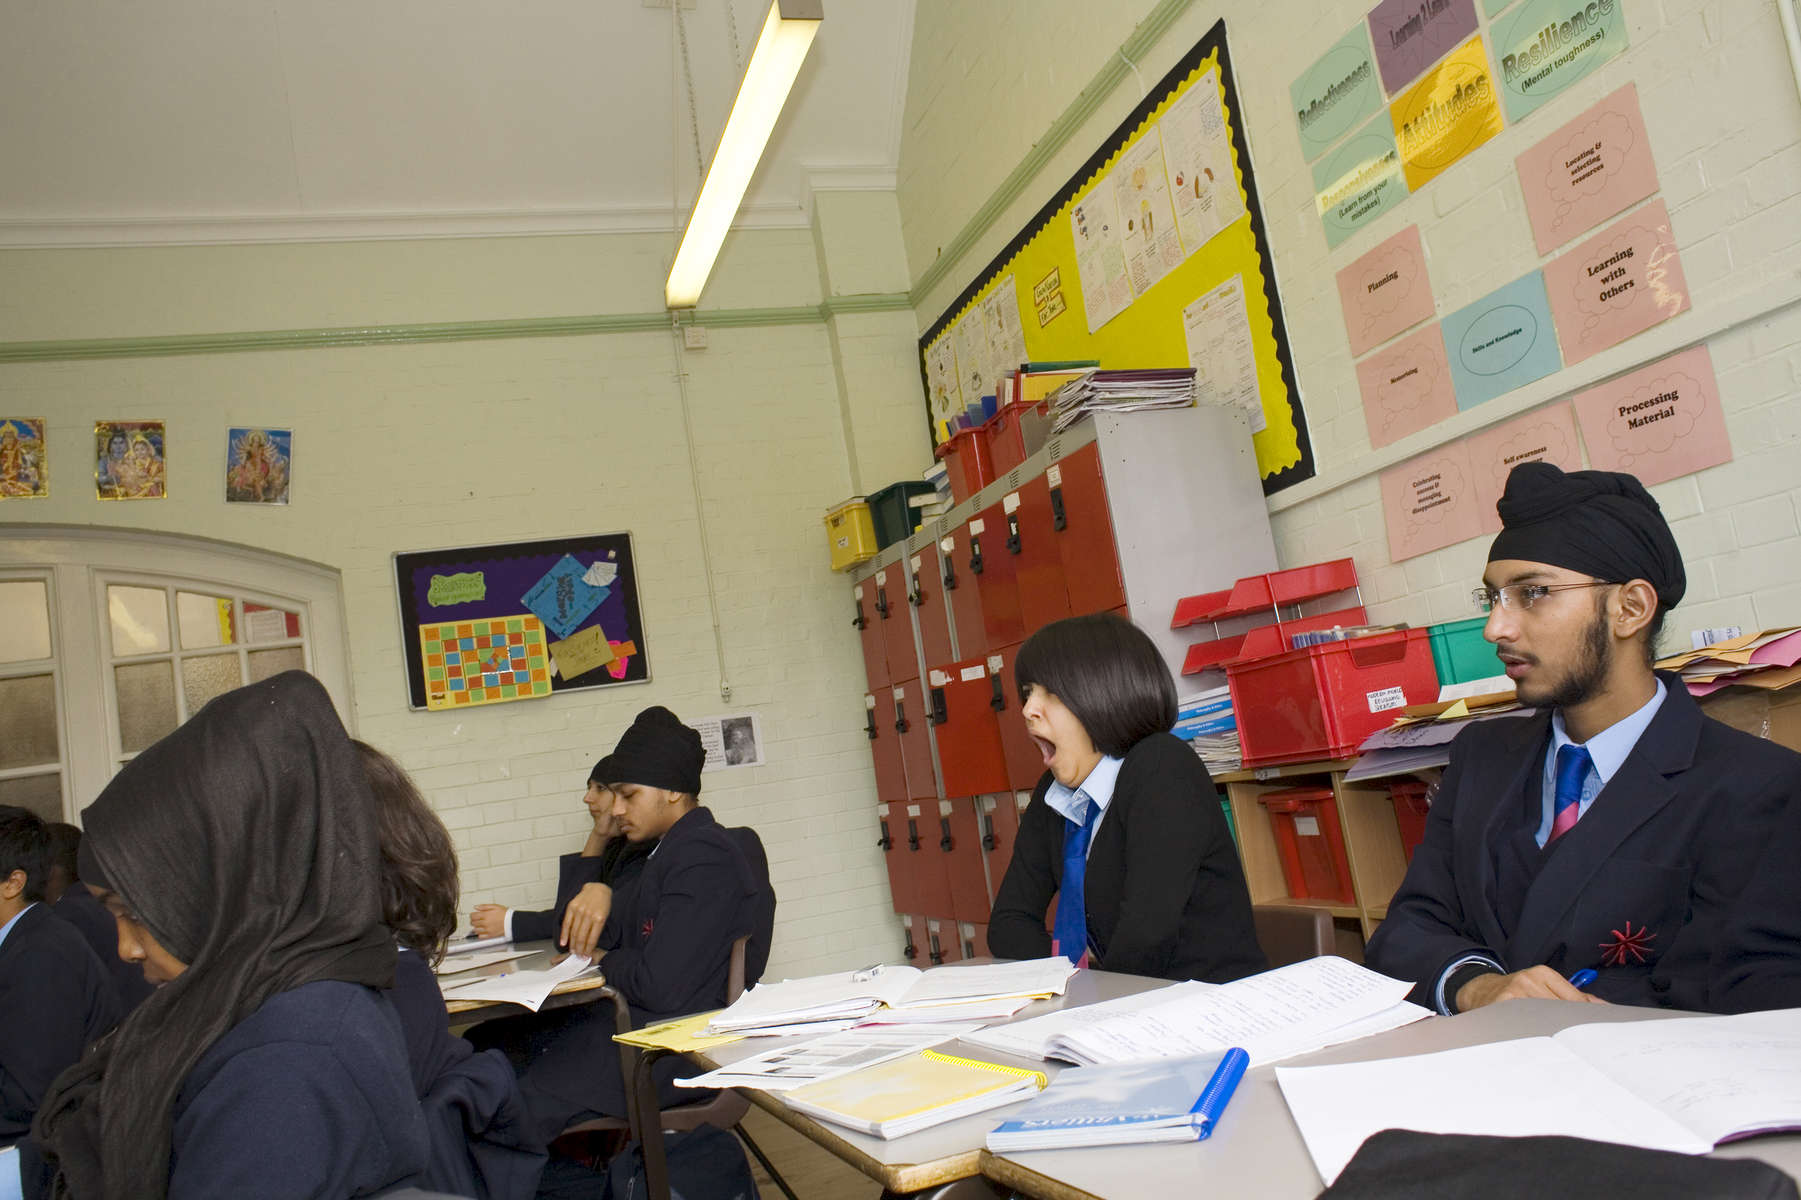 15 year old Robyn Kullar whose family are Sikh in a Religious Education class learning about aspects of Islam.Villiers High School is in the town of Southall. It has a very wide ethnic diversity. 45 different 1st spoken languages are listed among the 1208 pupils. 25 ethnic groups are represented with Indian, Pakistani and Black-Somali the three highest.Southall is a suburban district of West London, England. The town has one of the largest concentrations of South Asian people outside of the Indian sub-continent. Over 55% os Southall's population of 70,000 is Indian/Pakistani, with less than 10% being White British.